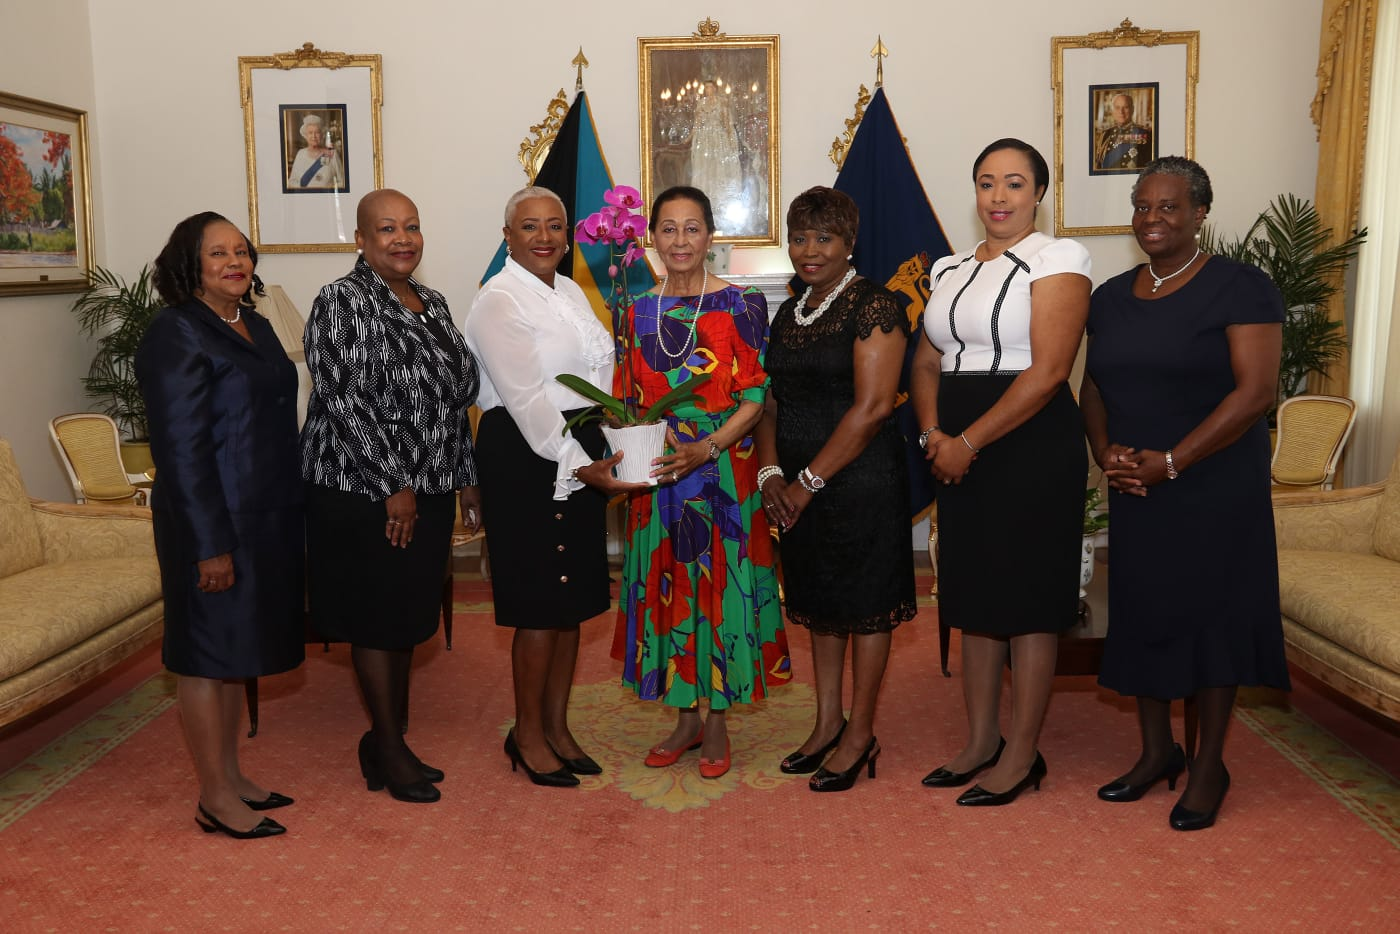 Senators visit Her Excellency The Most Honorable Dame Marguerite Pindling